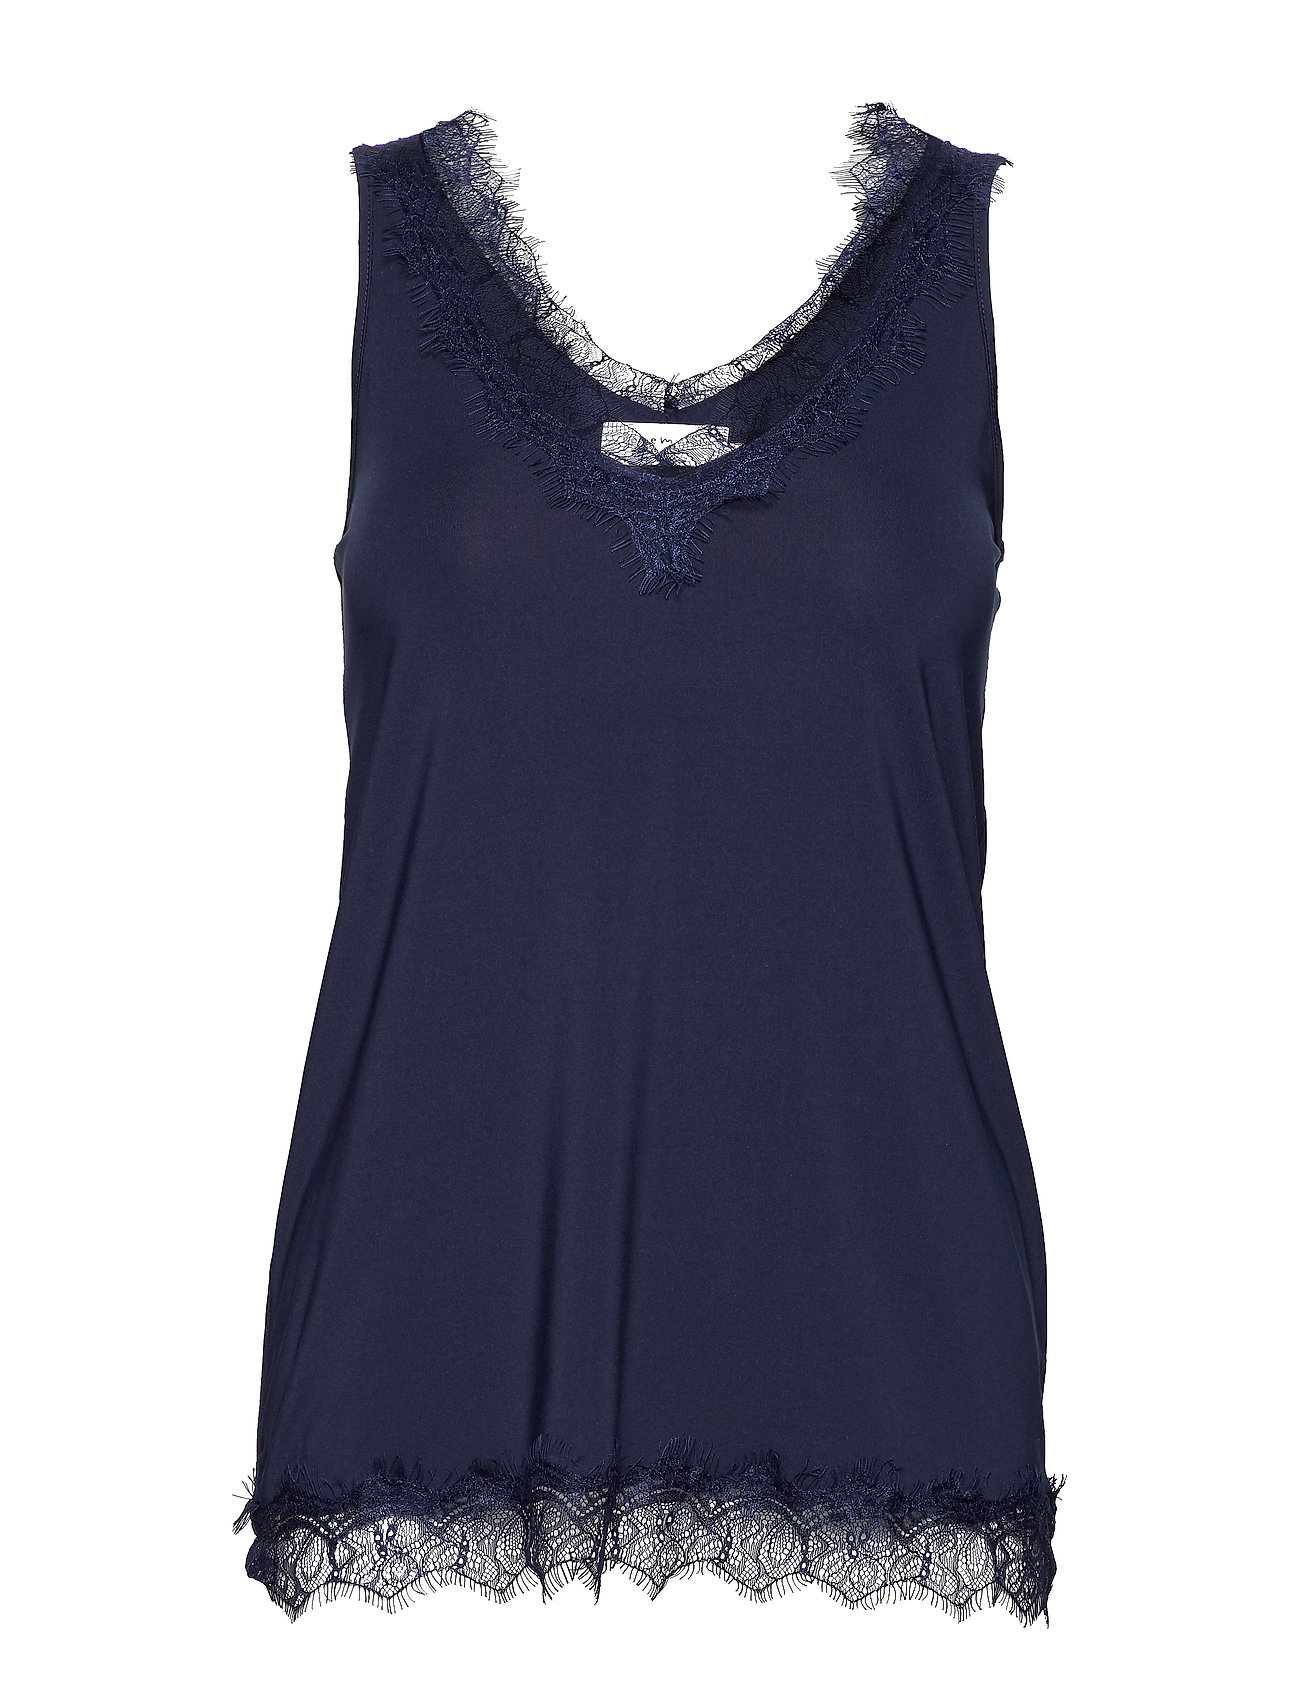 Rosemunde Top - MARITIME BLUE